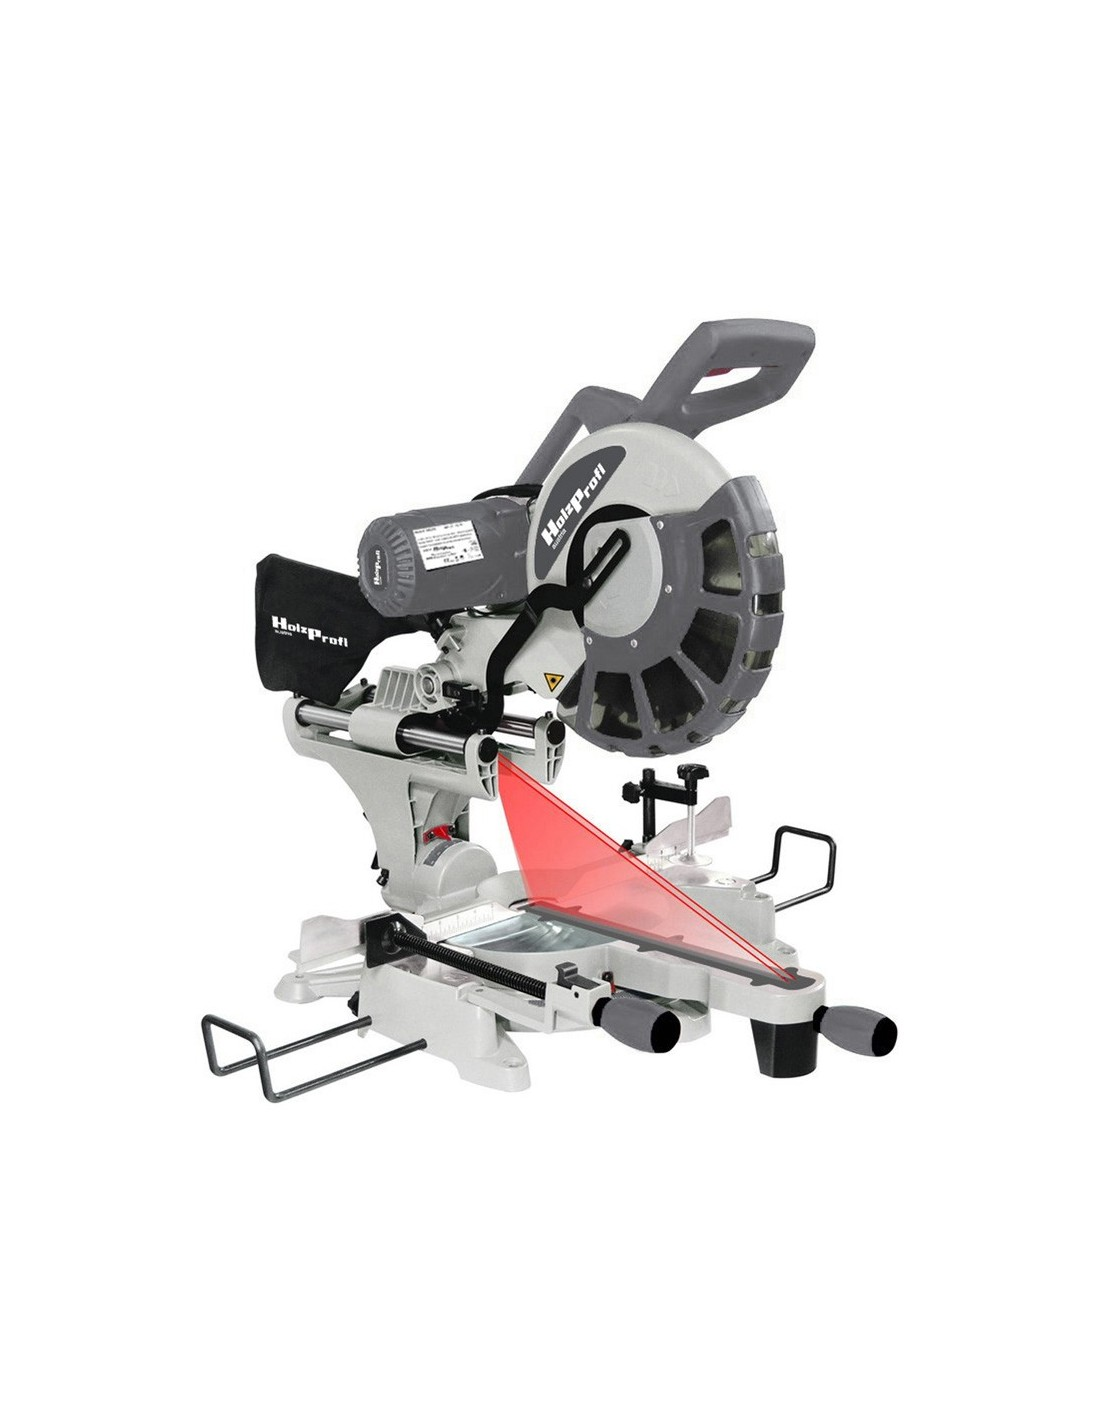 Scie onglet radiale machine bois professionnelle - Scie a onglet radiale ...